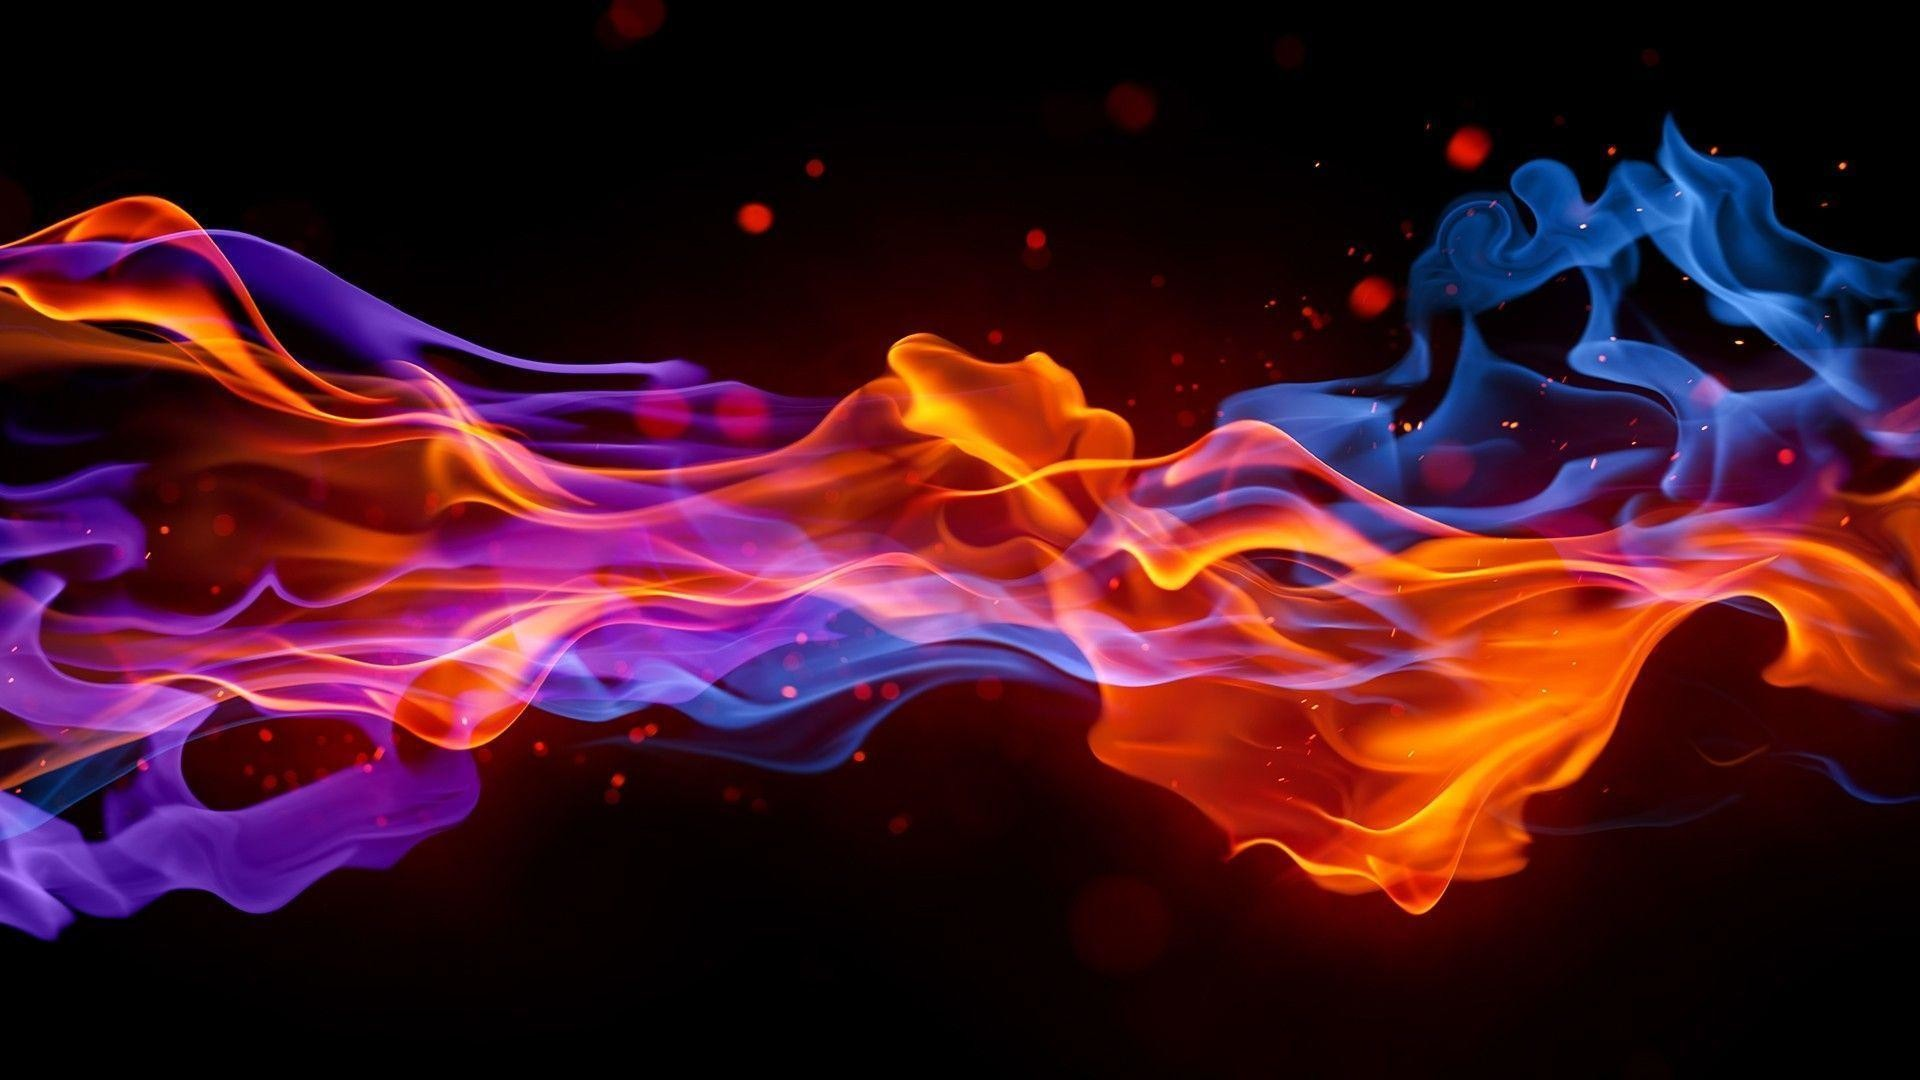 Flame backgrounds 56 images 1920x1080 wallpapers for blue flames white background voltagebd Images